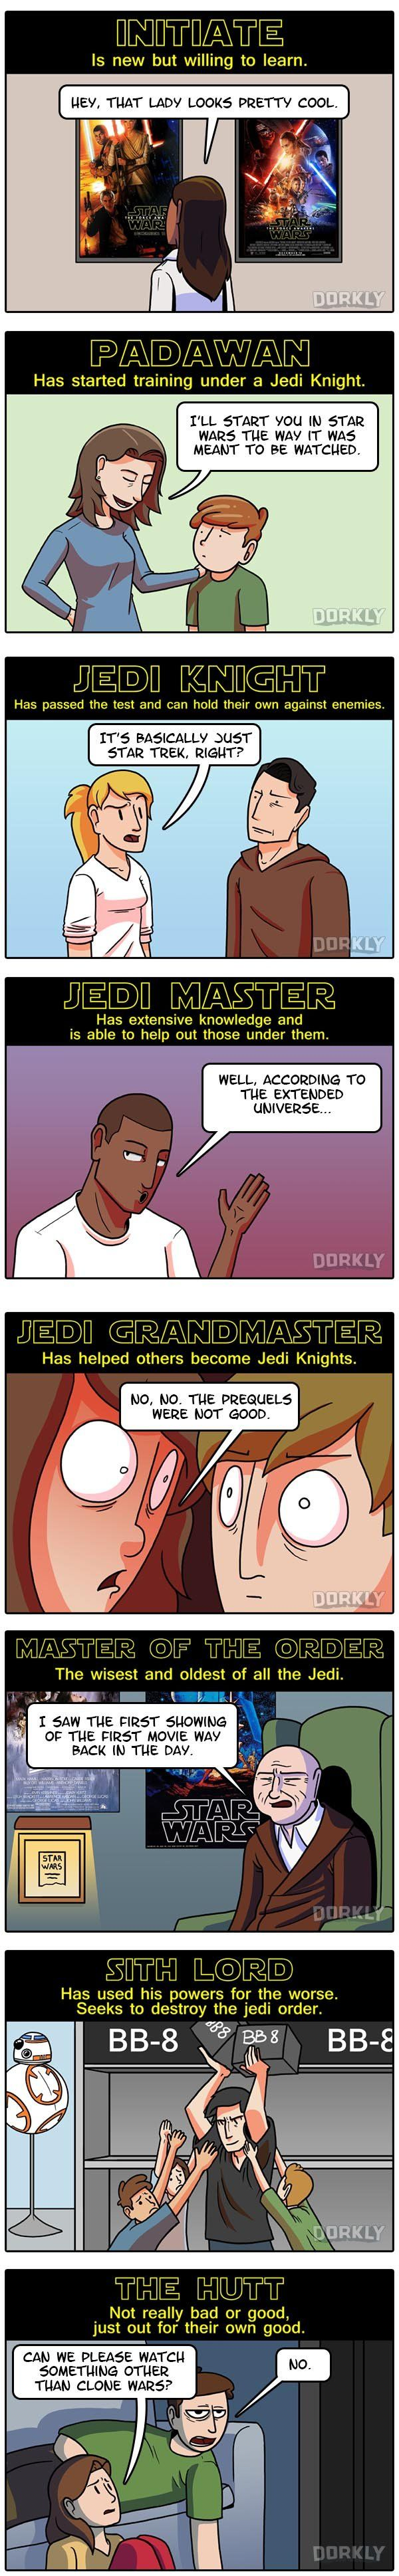 I am a Jedi Knight, but my friend is a Jedi Master.